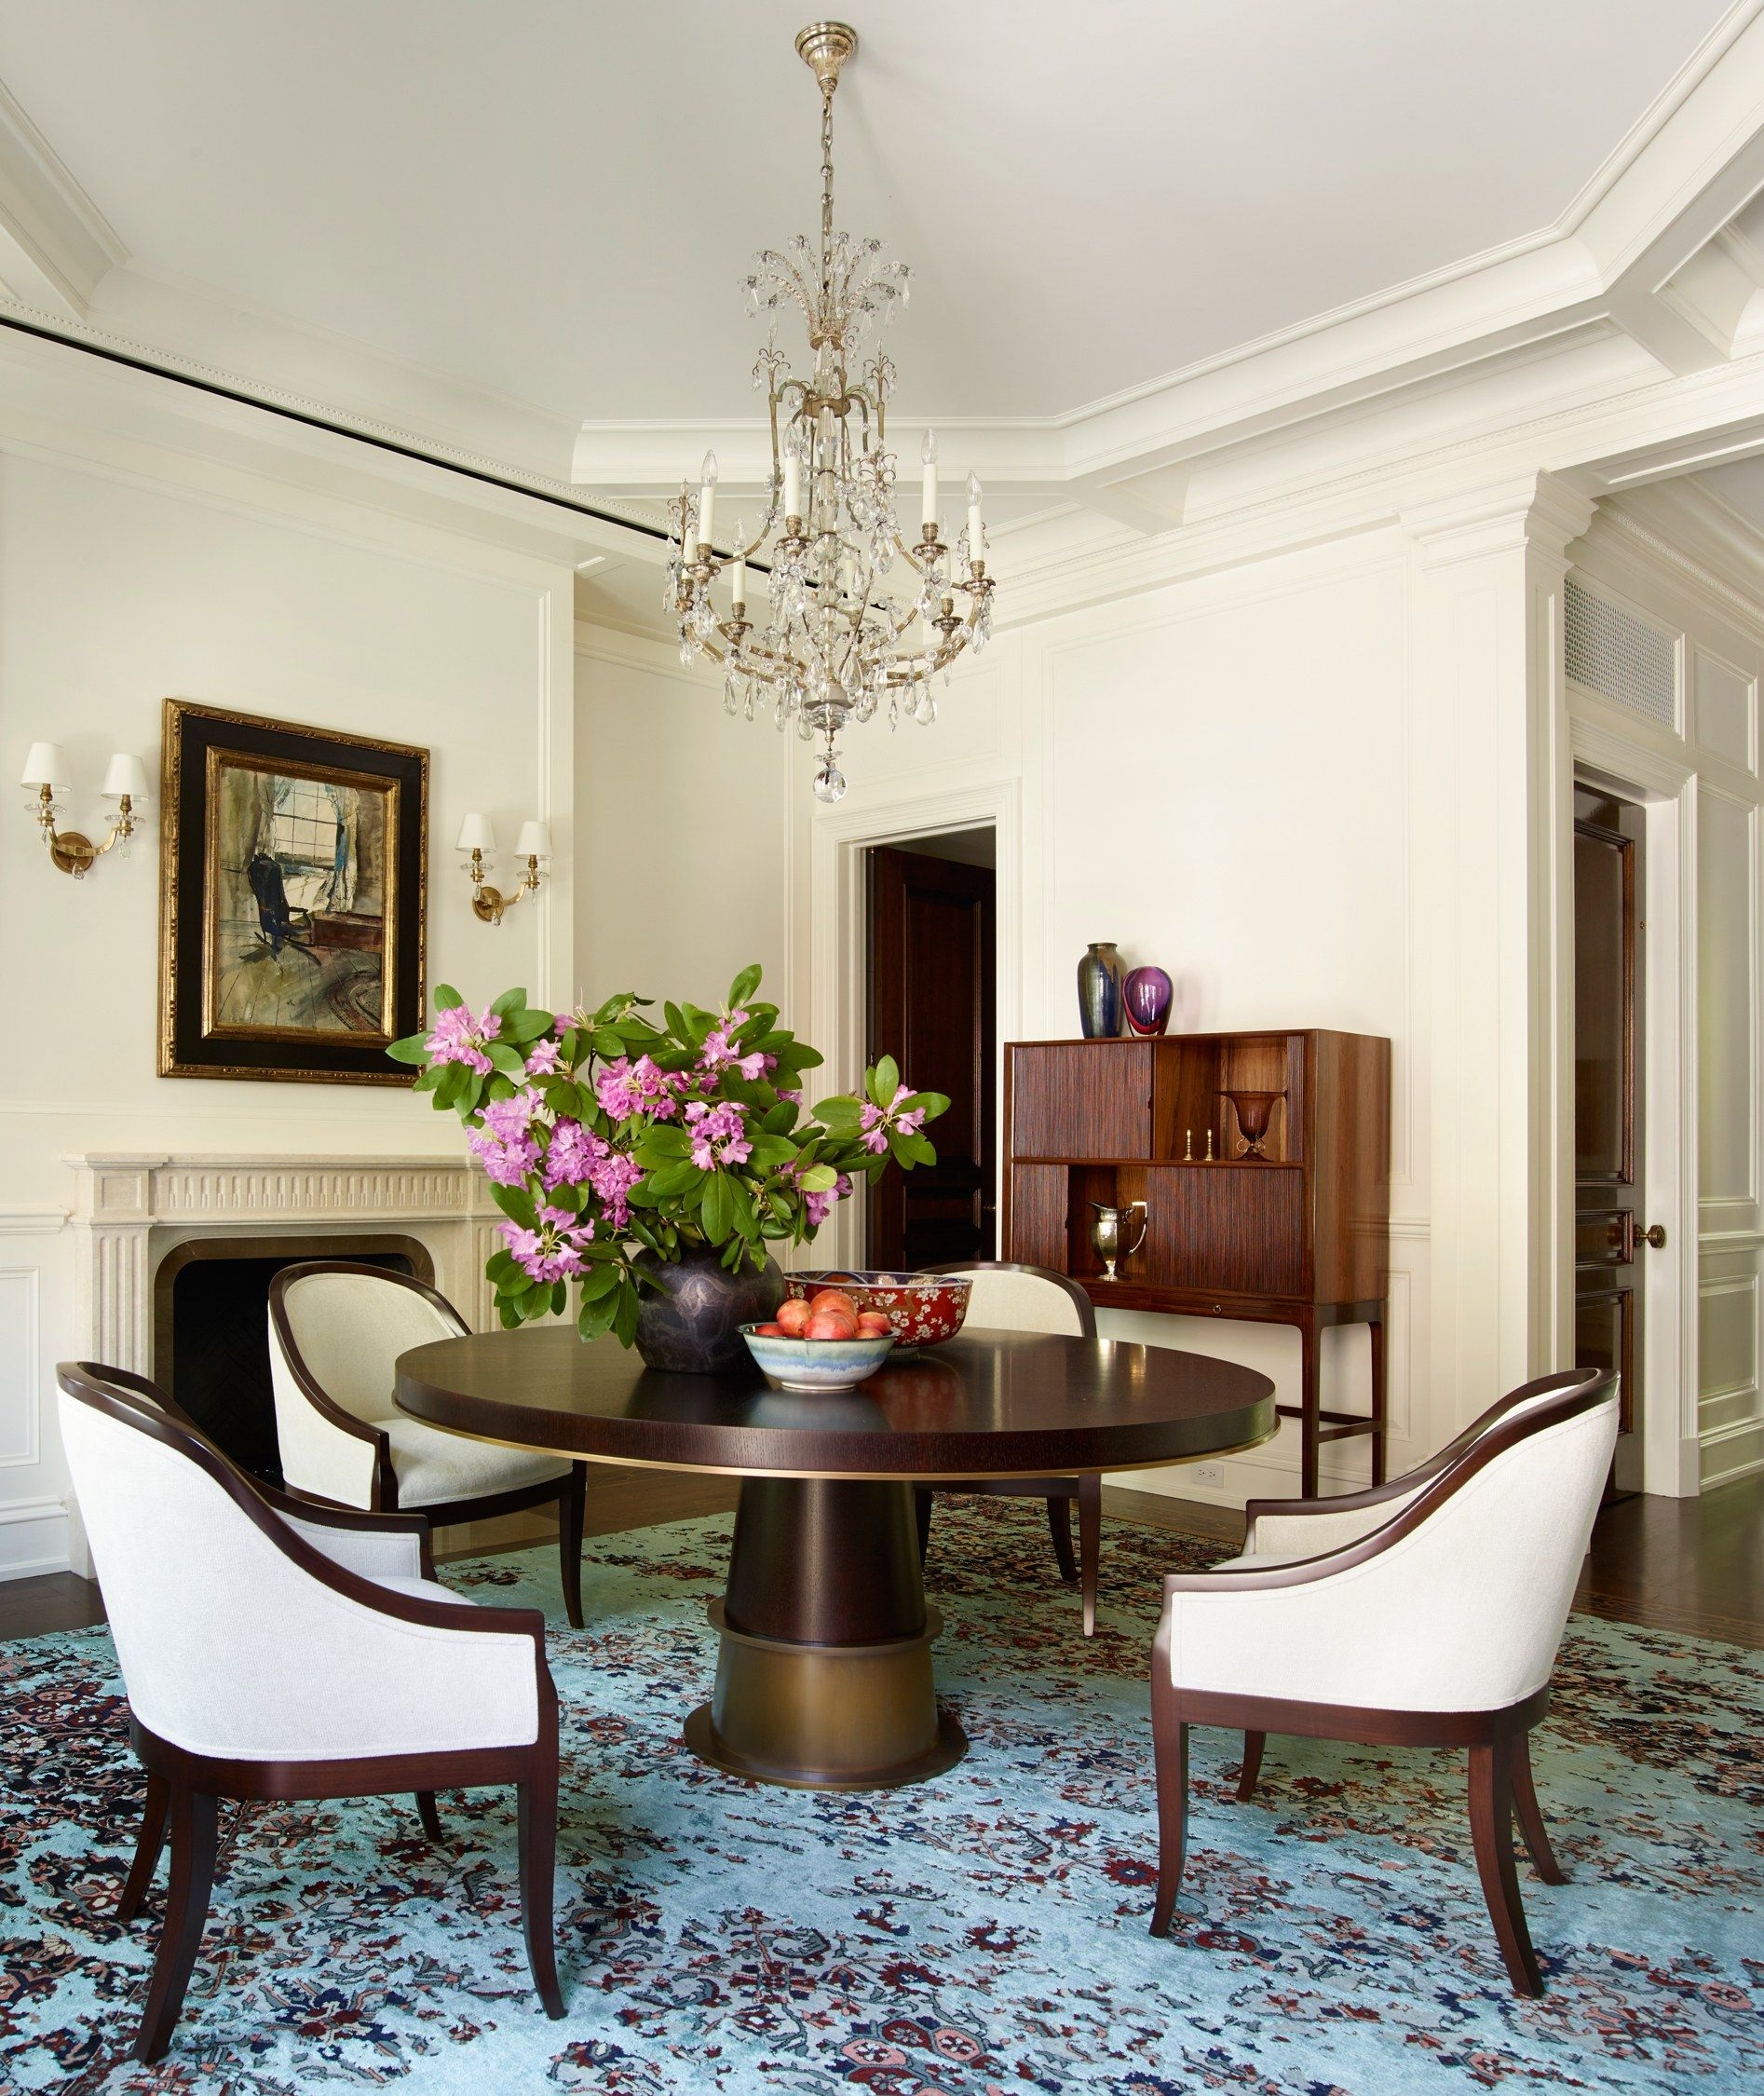 An Elegant New York Townhouse Is Reborn   Dining room   Pinterest     An Elegant New York Townhouse Is Reborn Photos   Architectural Digest